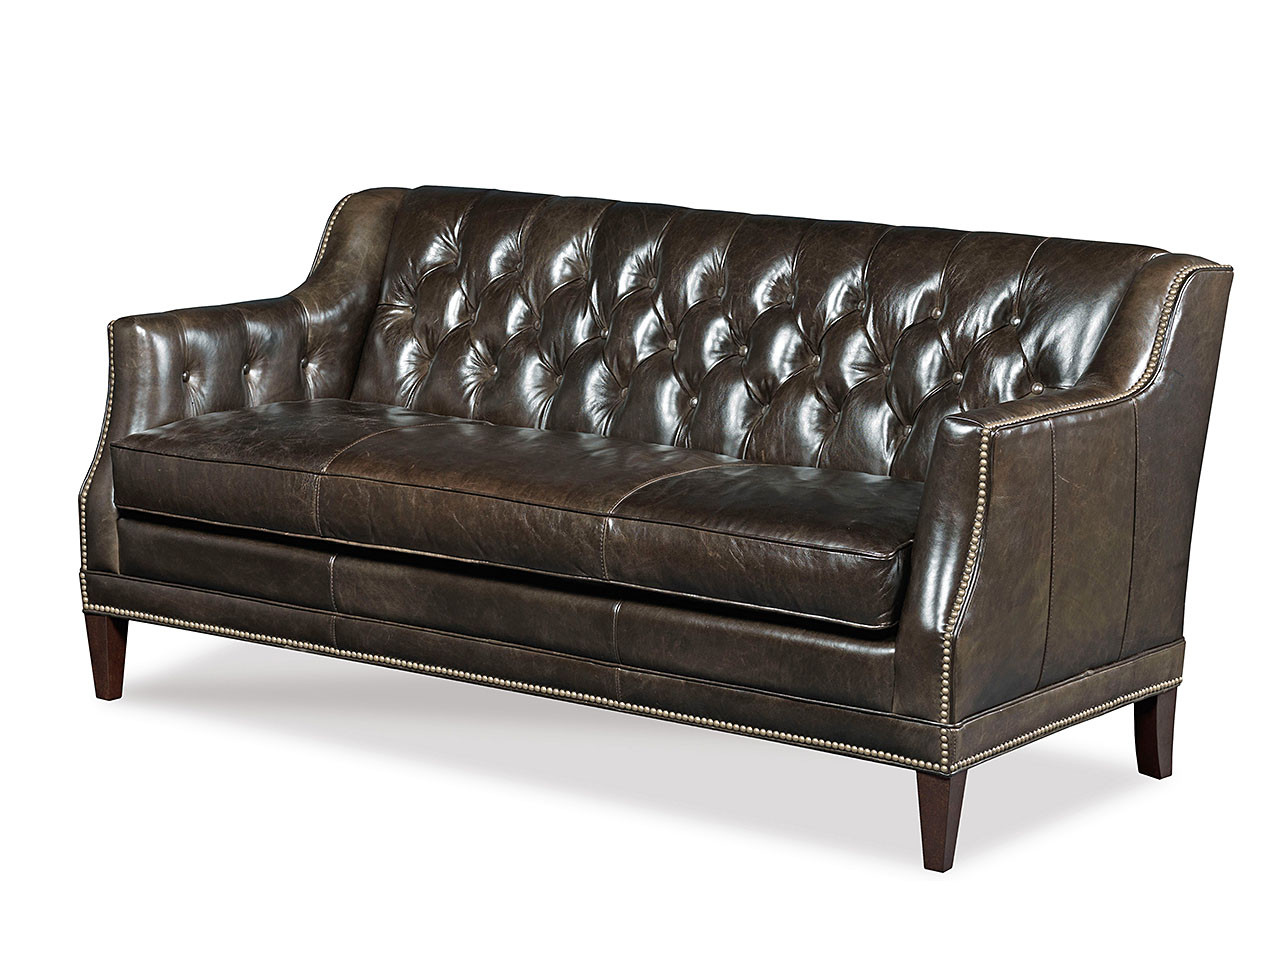 Balmoral Blair Apartment Leather Sofa | Country Willow